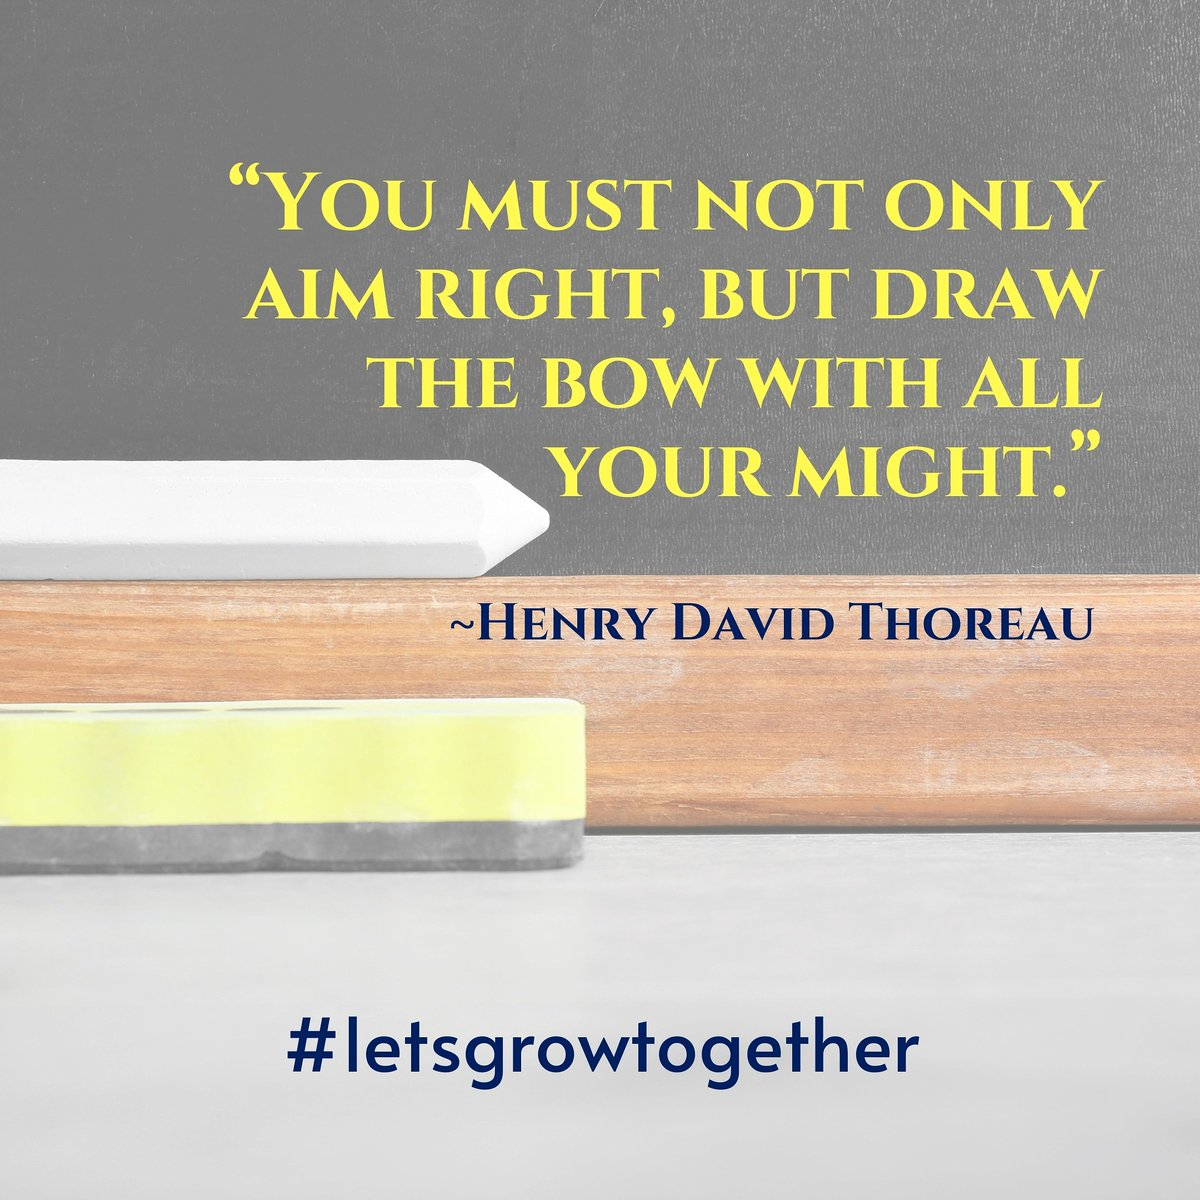 It's not just enough to aim but pursue it with all your necessary force and efforts!!  #mondaymotivation #ngomotivation #ngoconsultancy #shwayatiforngos #shwayatisolutions #letsgrowtogether #schoolseptember #safetyseptember #ss2020 https://t.co/ePdtHZhQvO